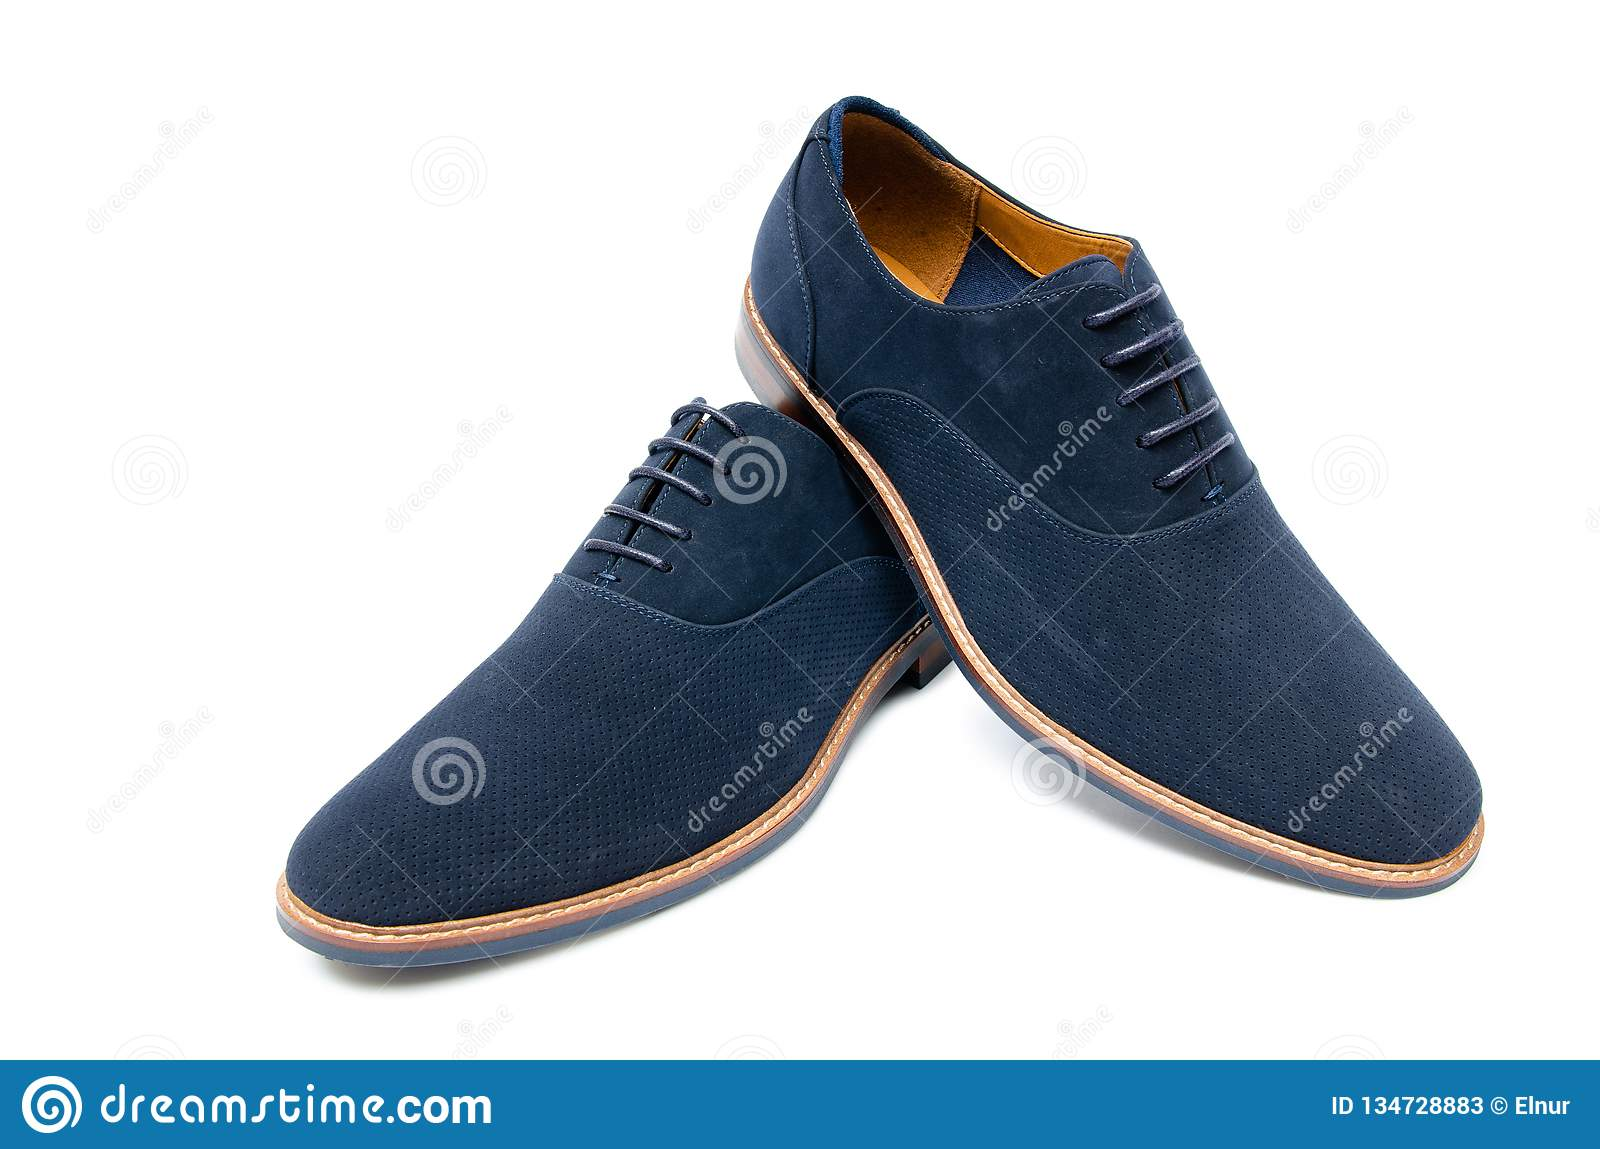 The blue suede shoes isolated on white background